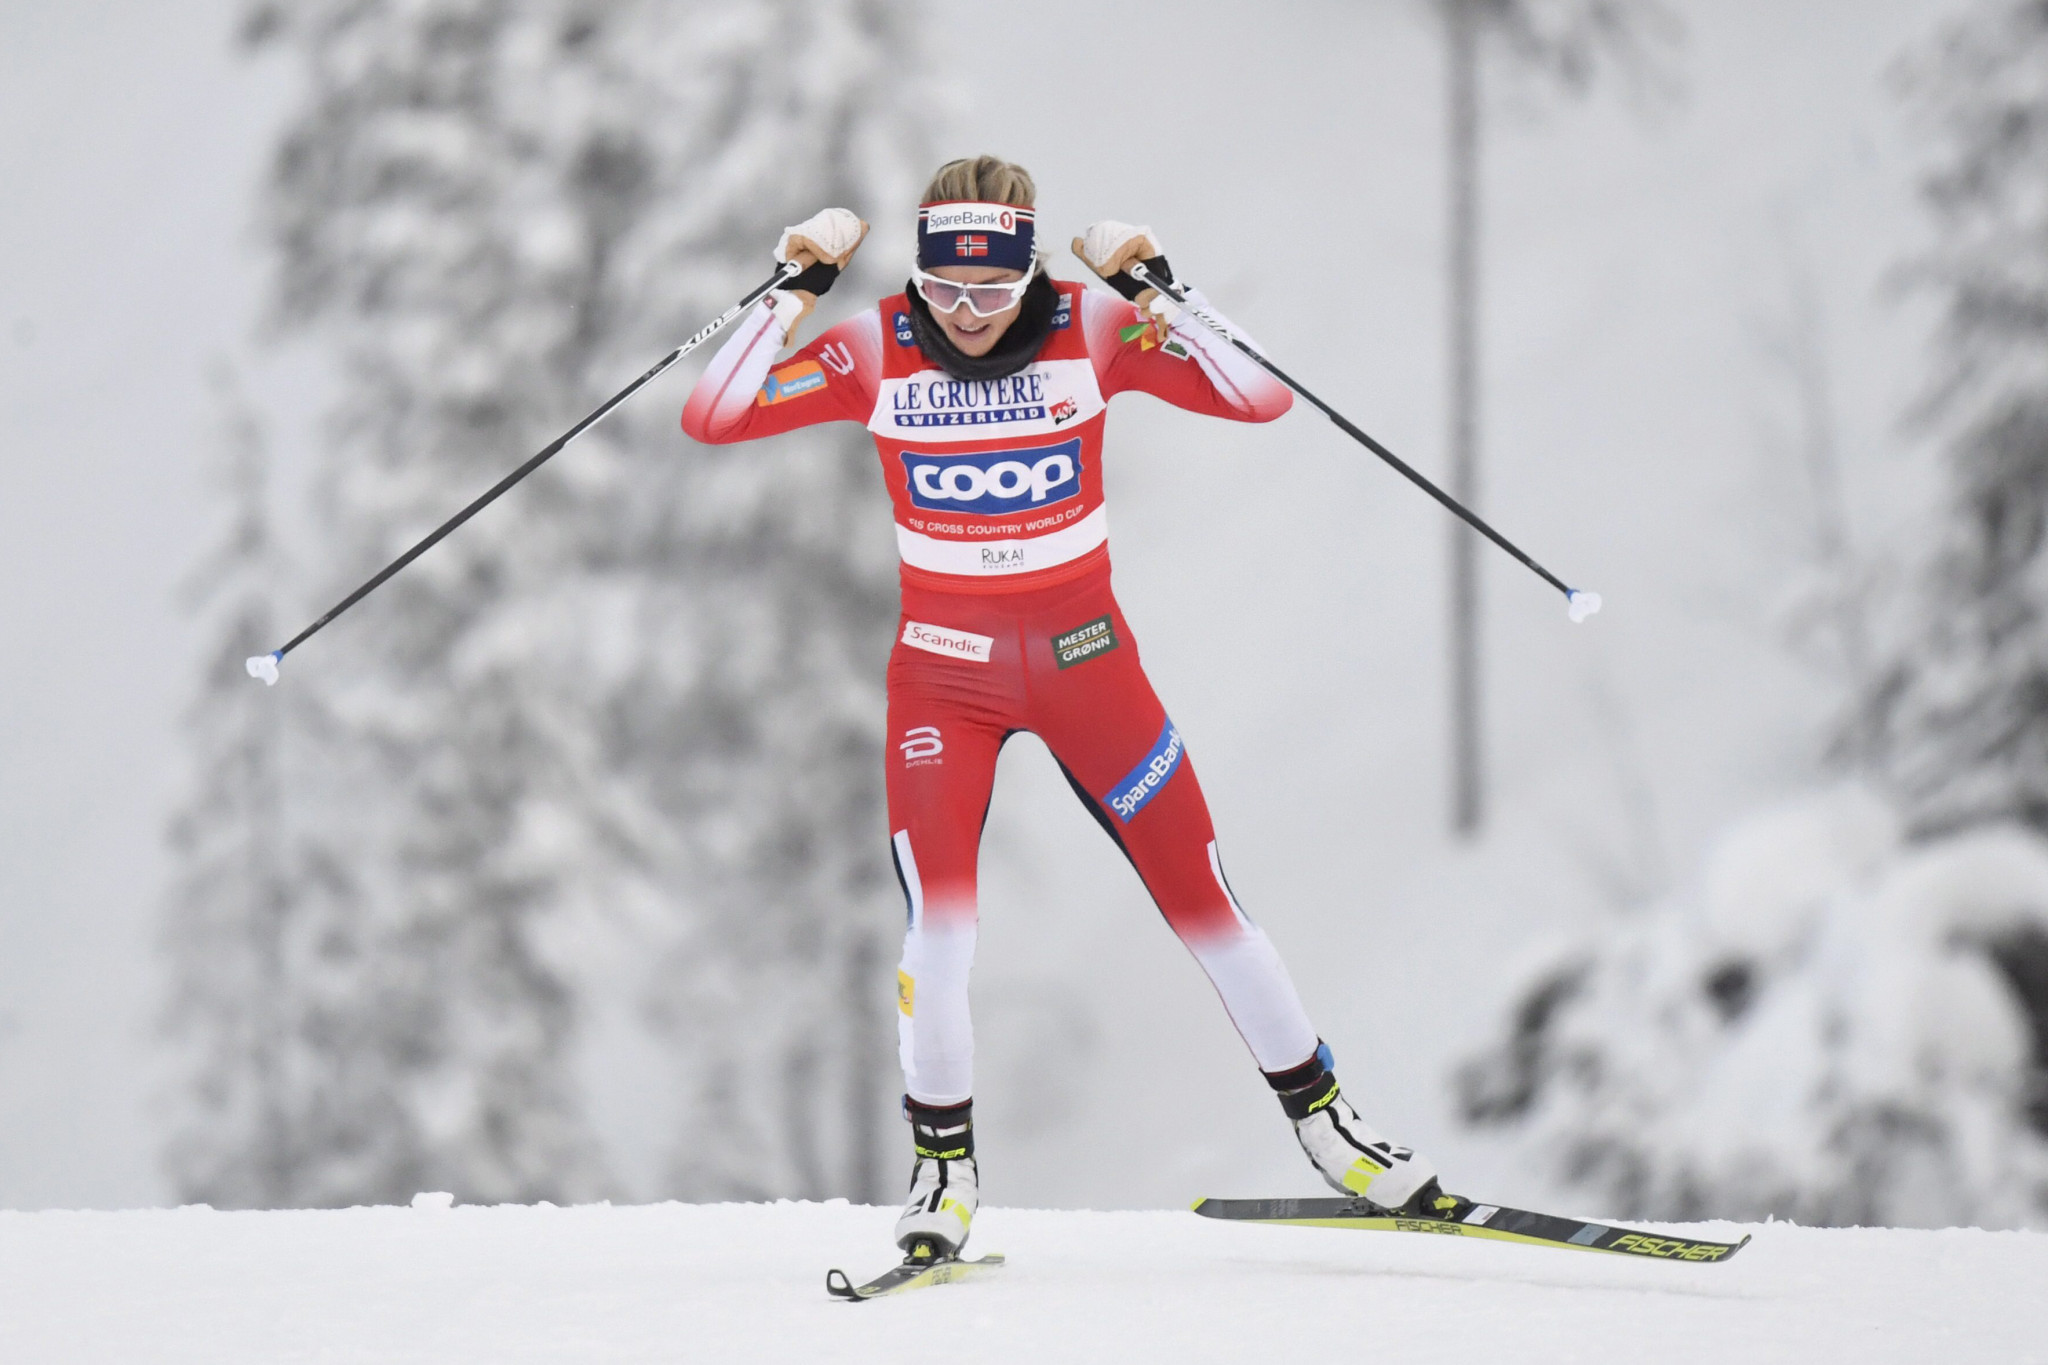 Therese Johaug eased to victory in the women's pursuit event in the FIS Cross-Country World Cup at Ruka ©Getty Images